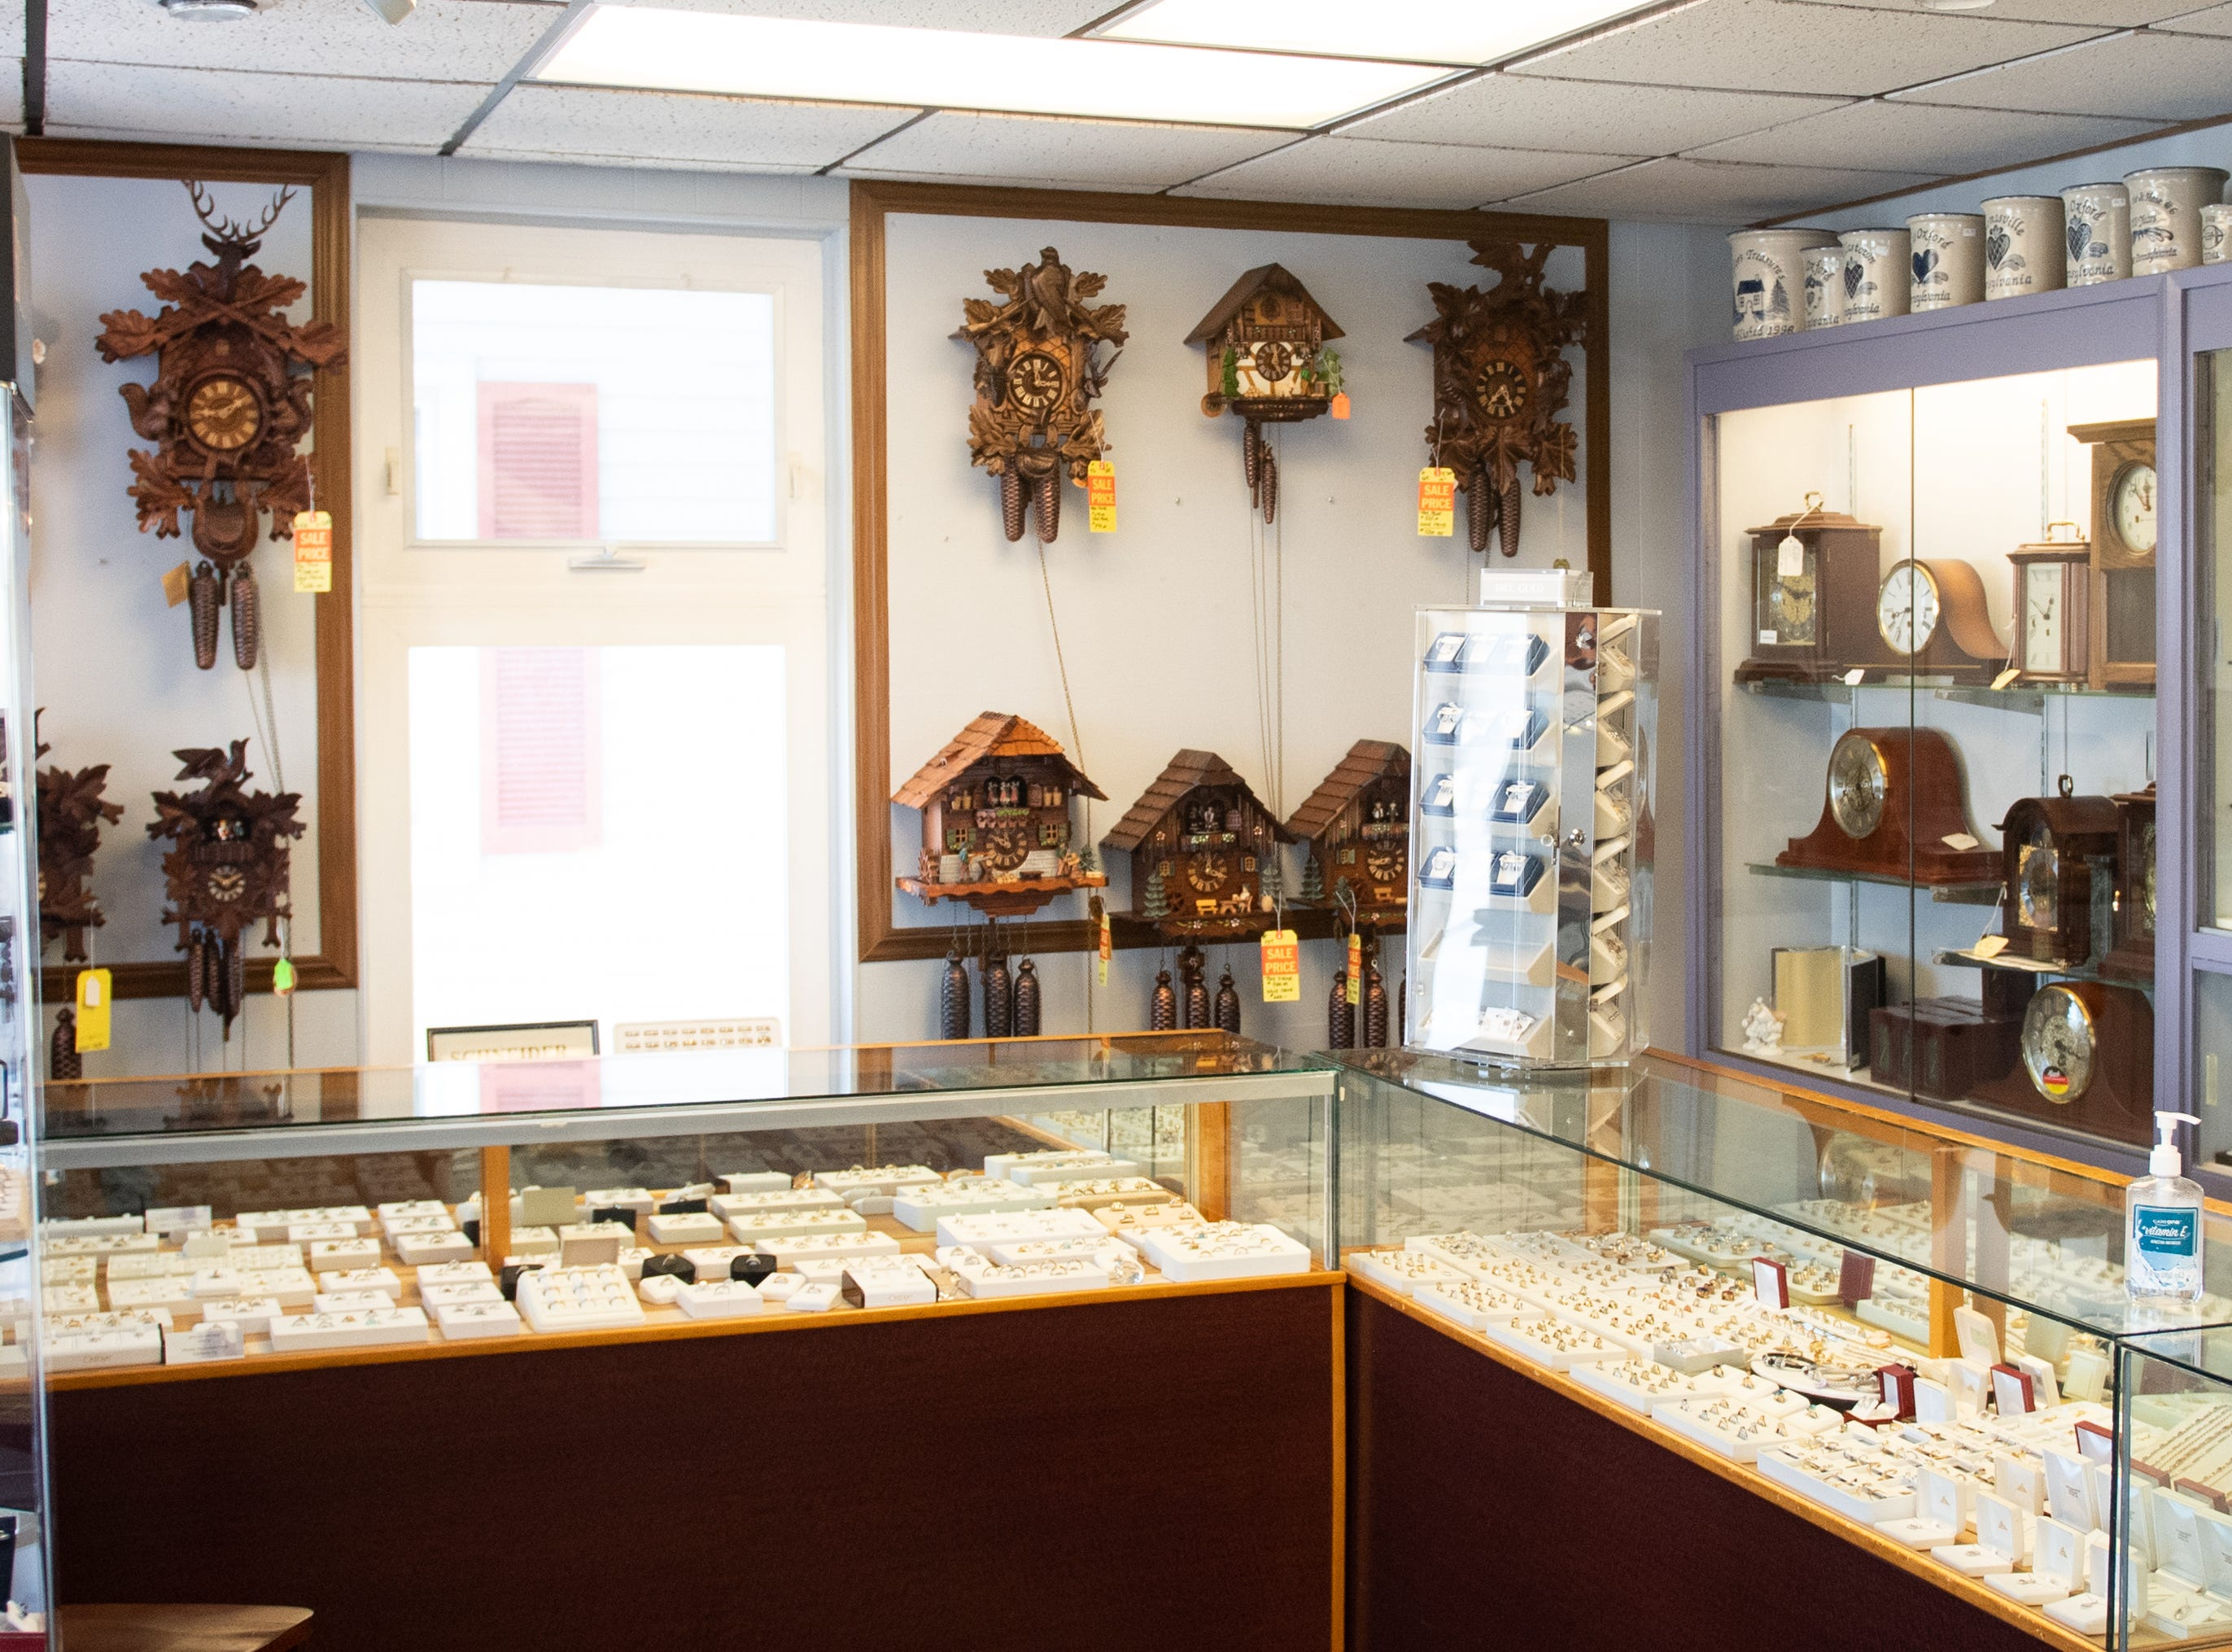 Though Botterbusch Jewelry closes in one day, all of their merchandise is still on display for any last minute customers, January 30, 2019.